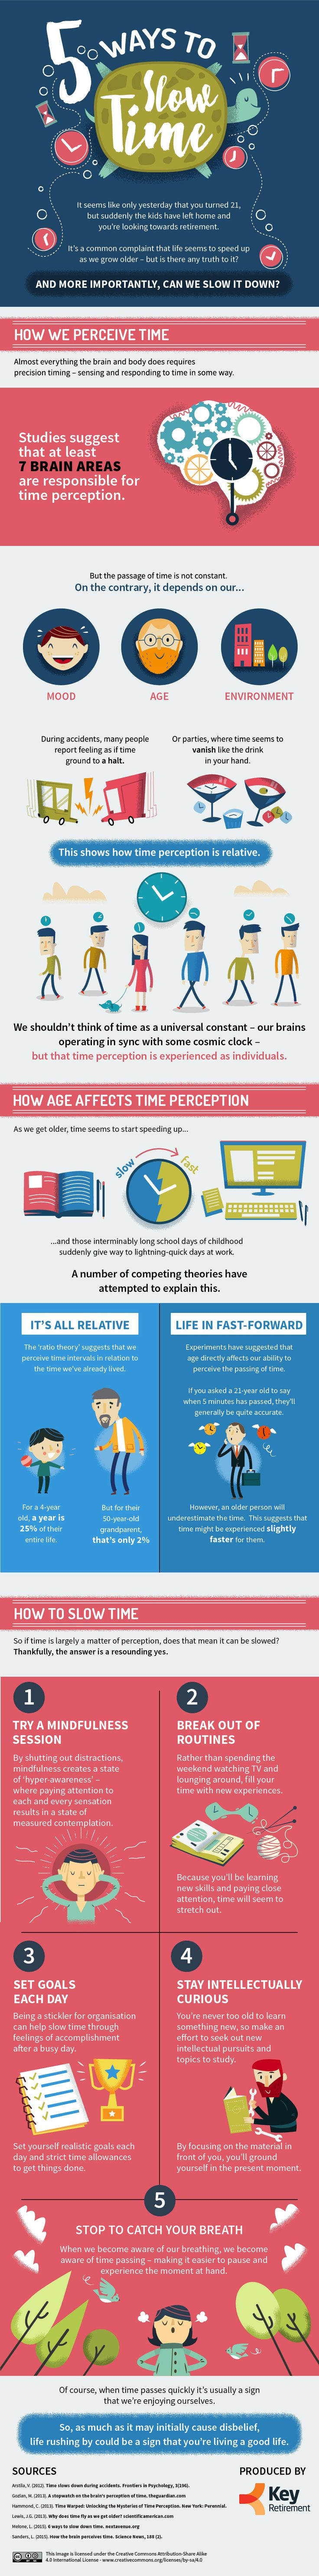 5 Ways to Slow Time #Infographic